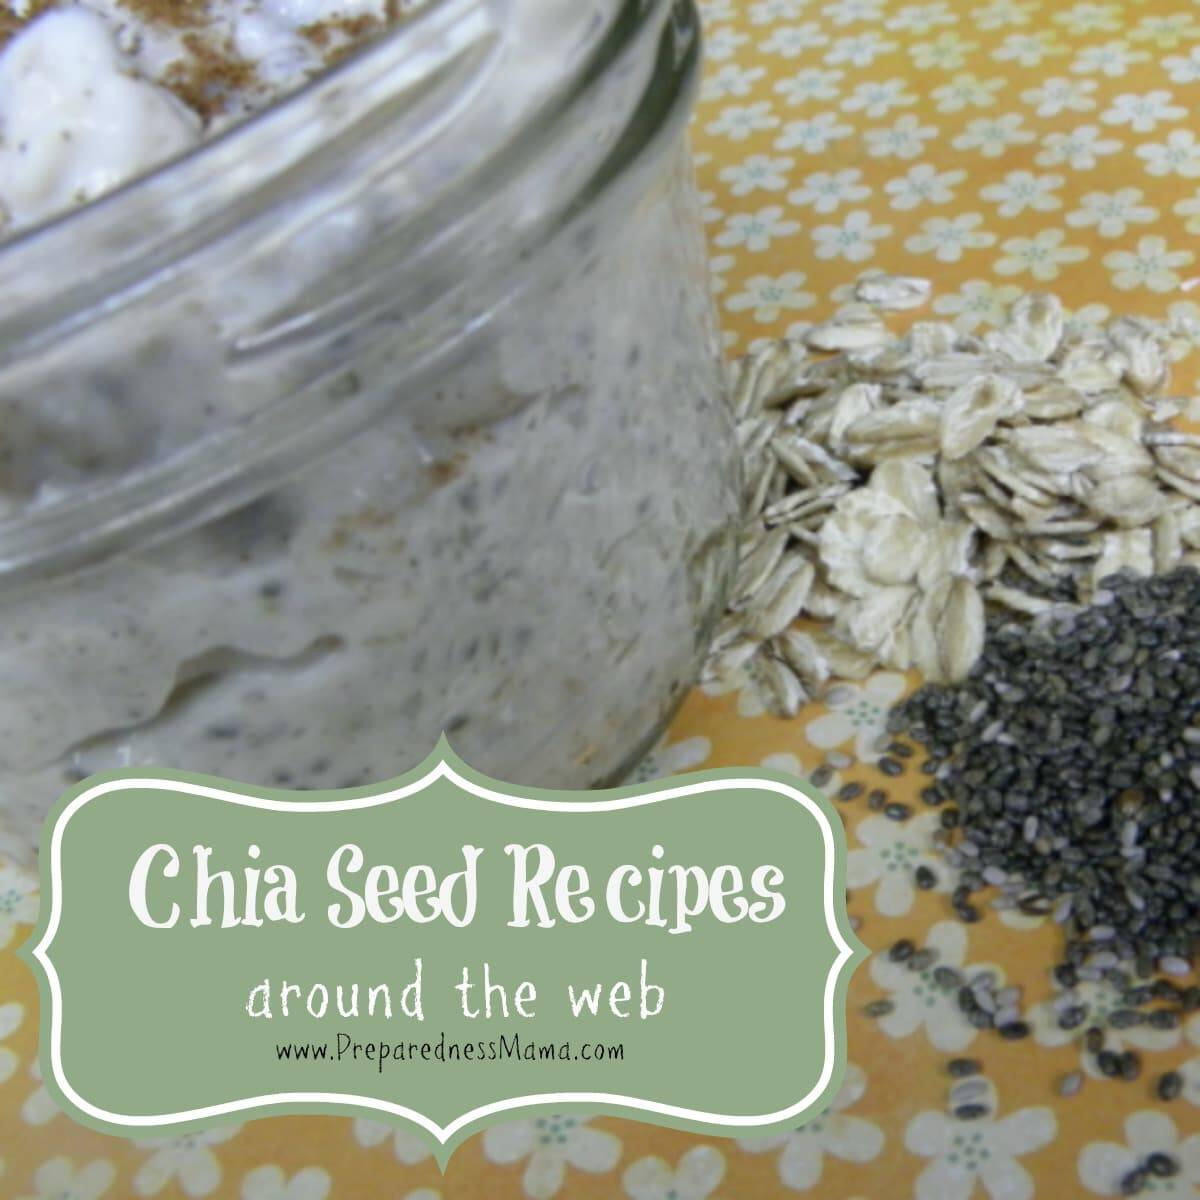 Chia Seed recipes around the web | PreparednessMama